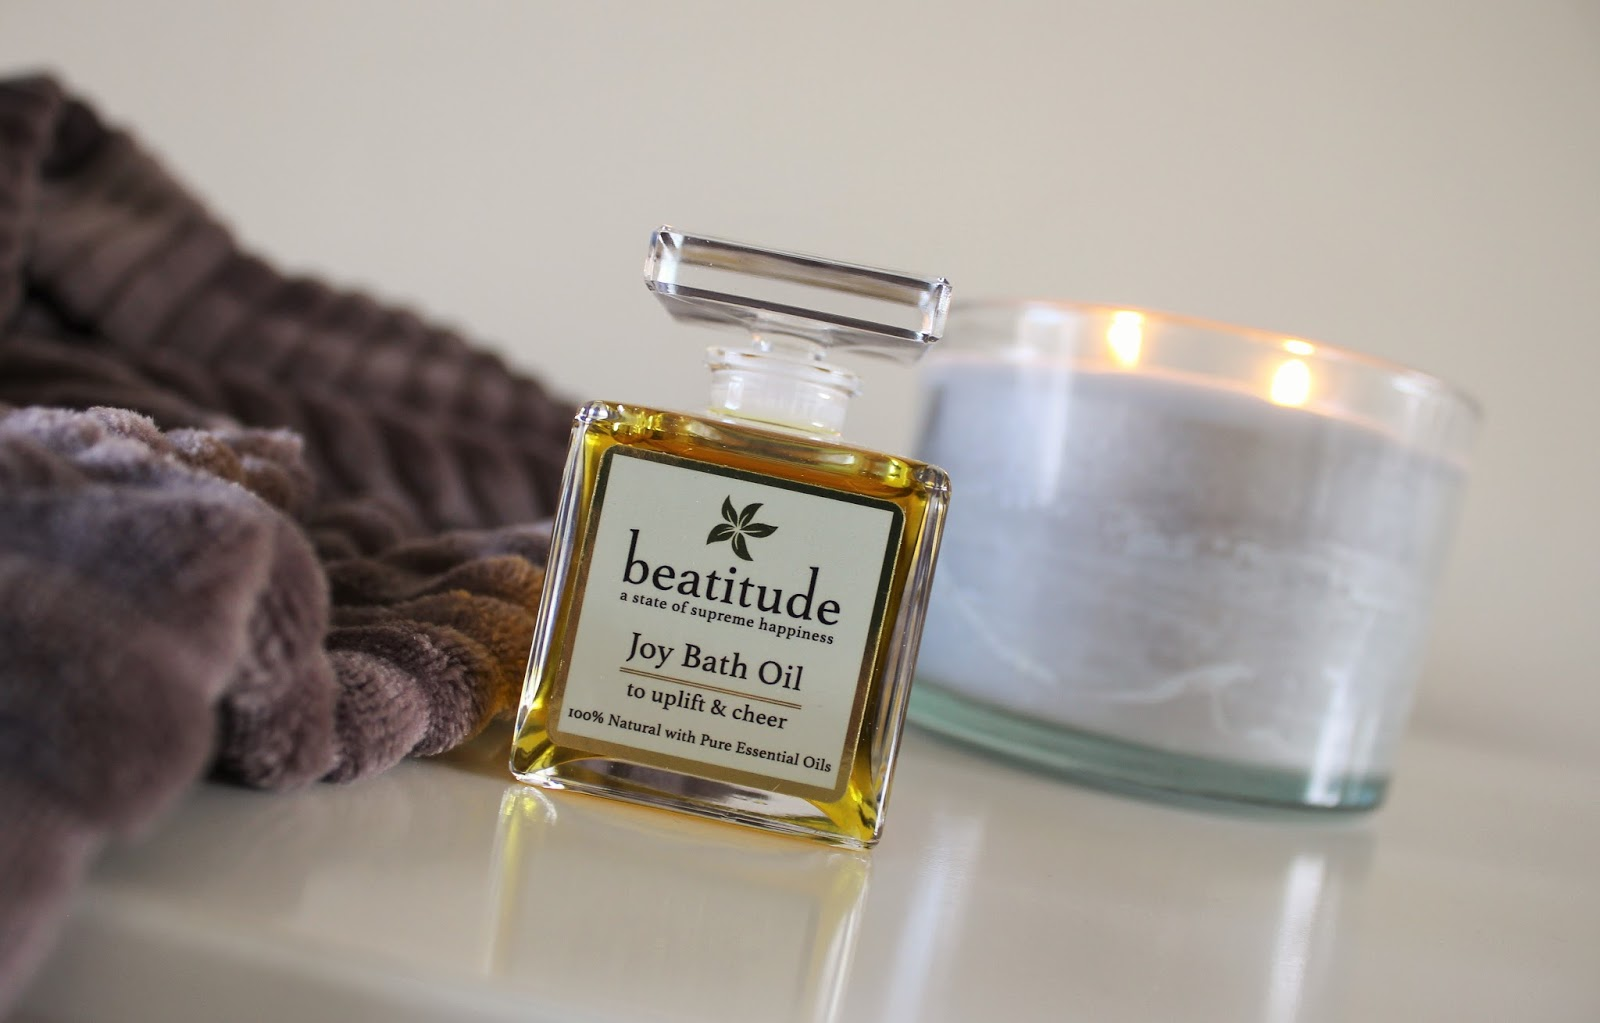 Review of Joy Bath Oil by Beatitude Products - 4